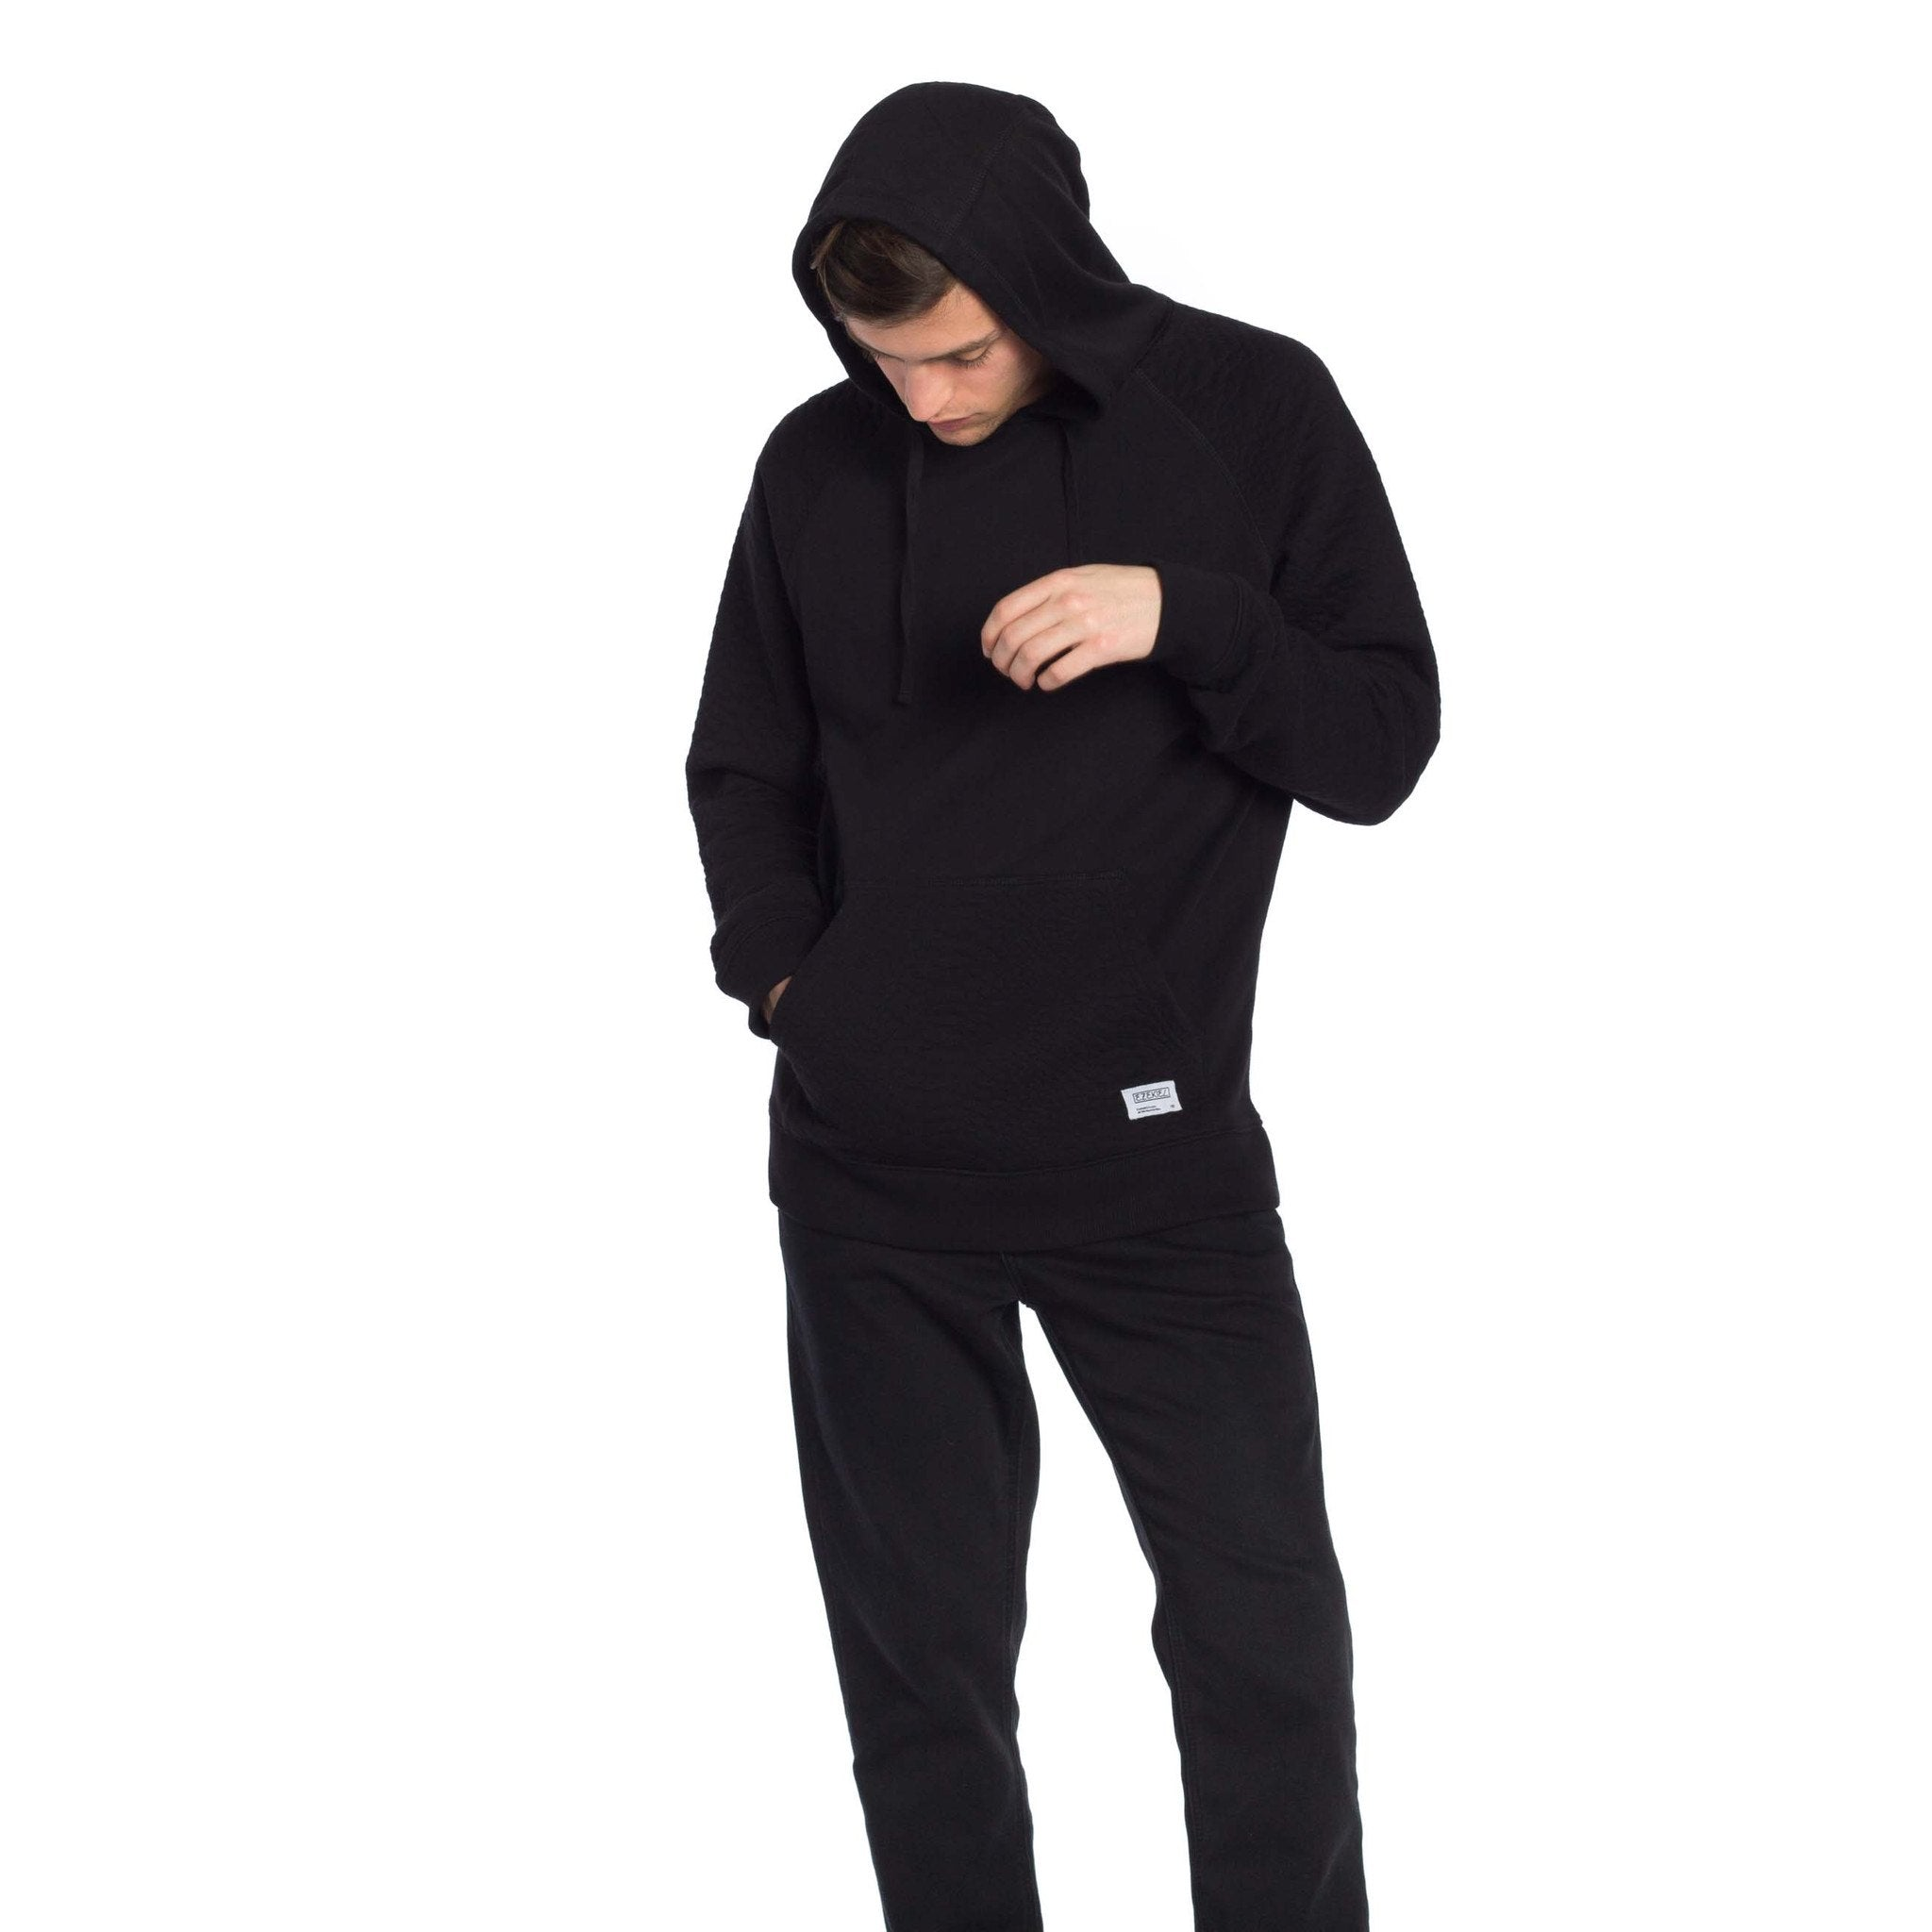 Kobra Hooded Pullover - Black